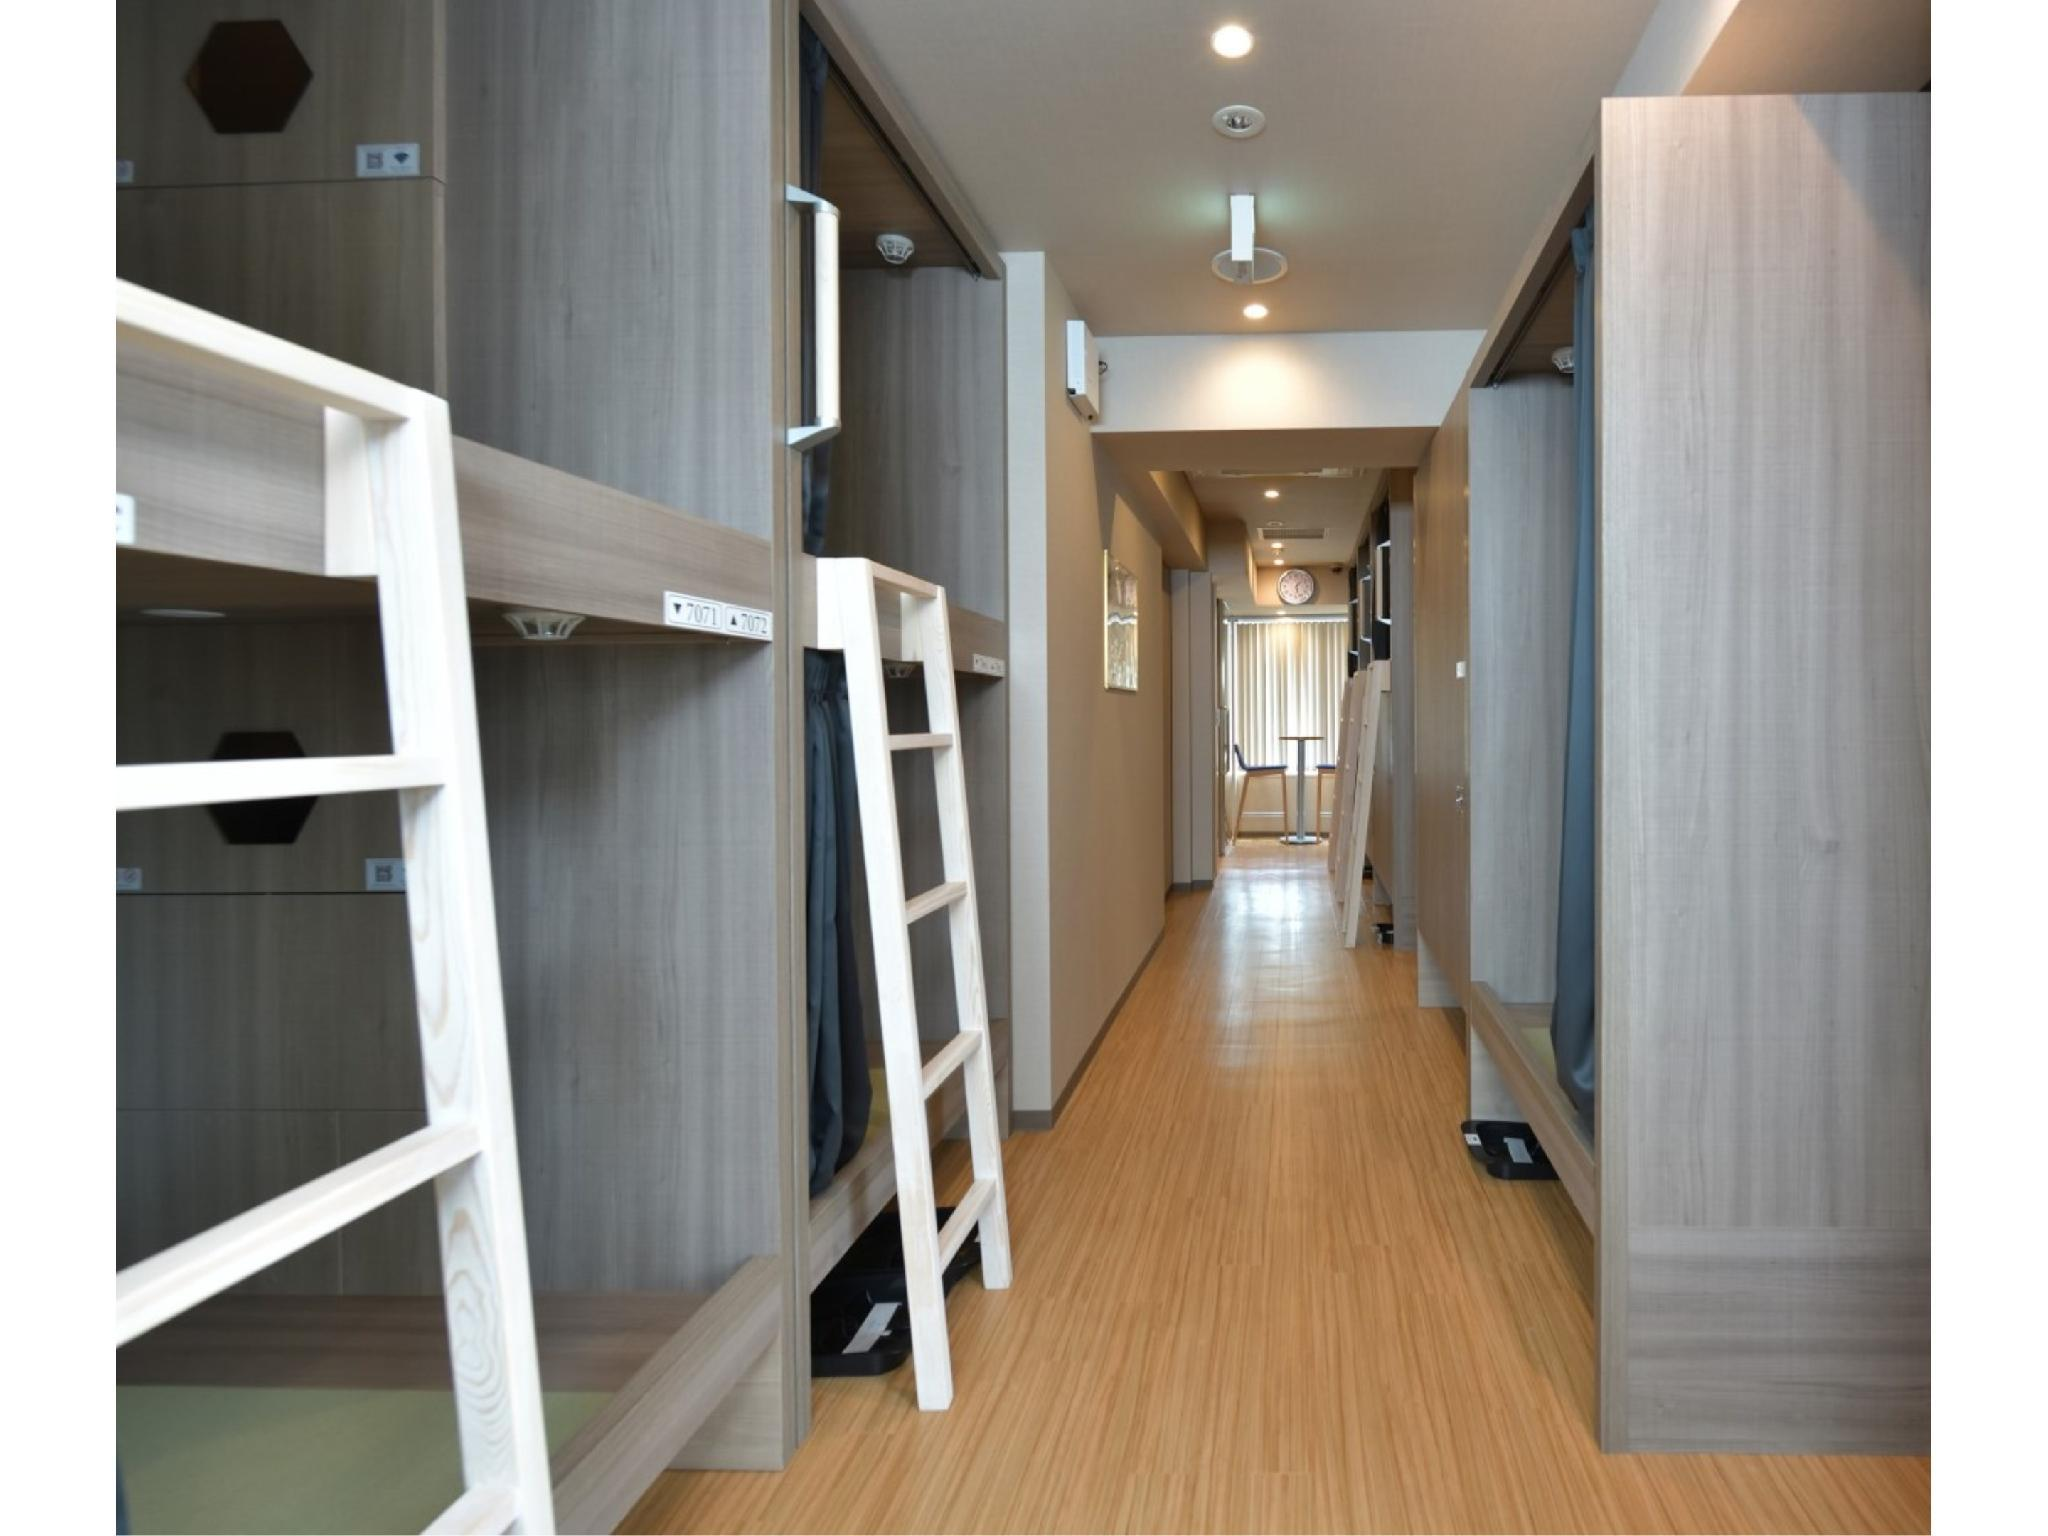 Mixed Dormitory Room (1 of 24 beds)